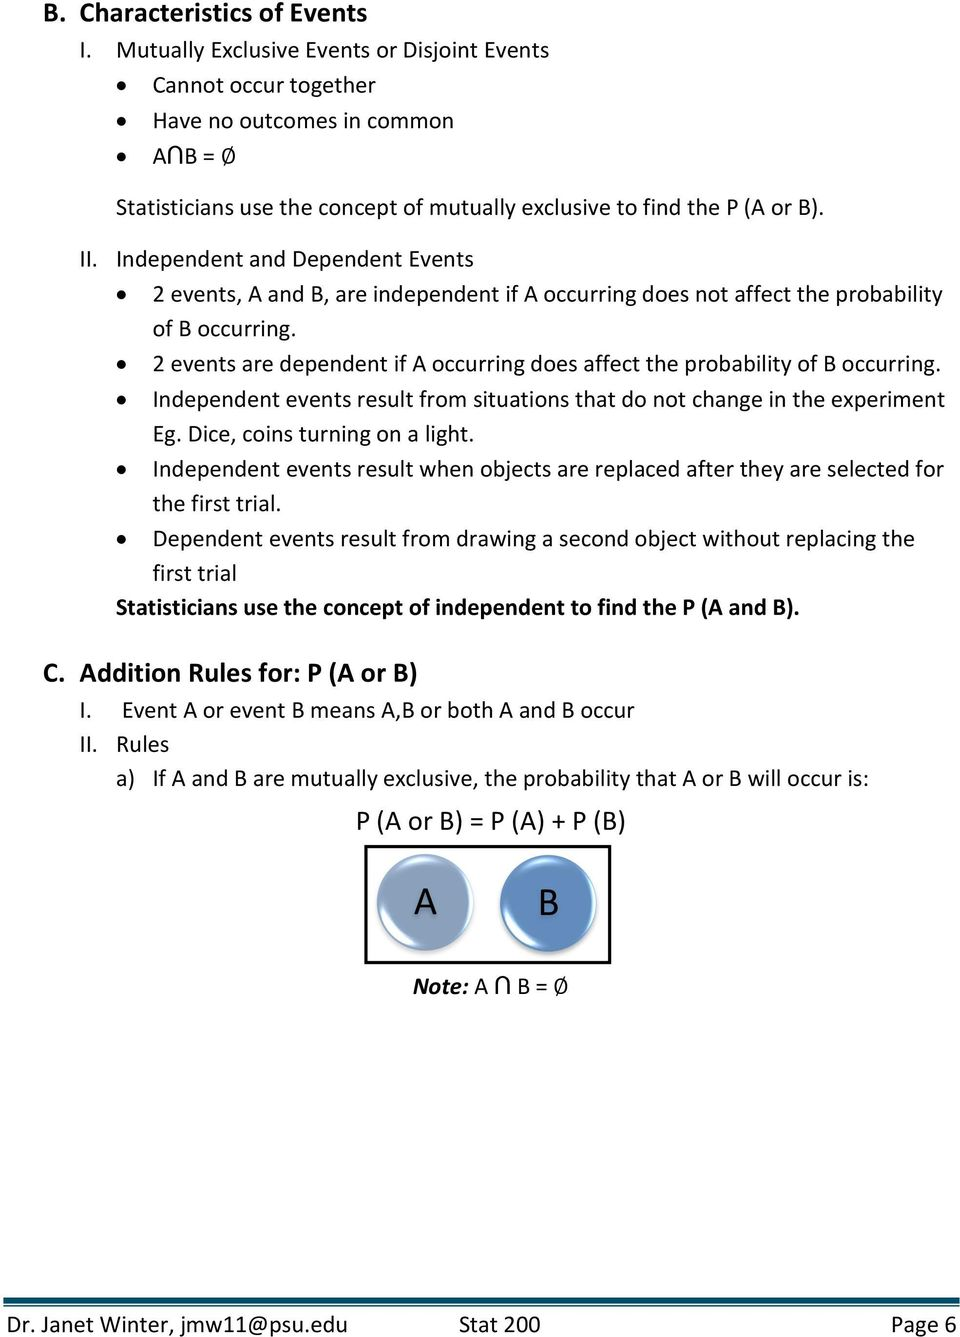 Chapter 4: Probability and Counting Rules - PDF